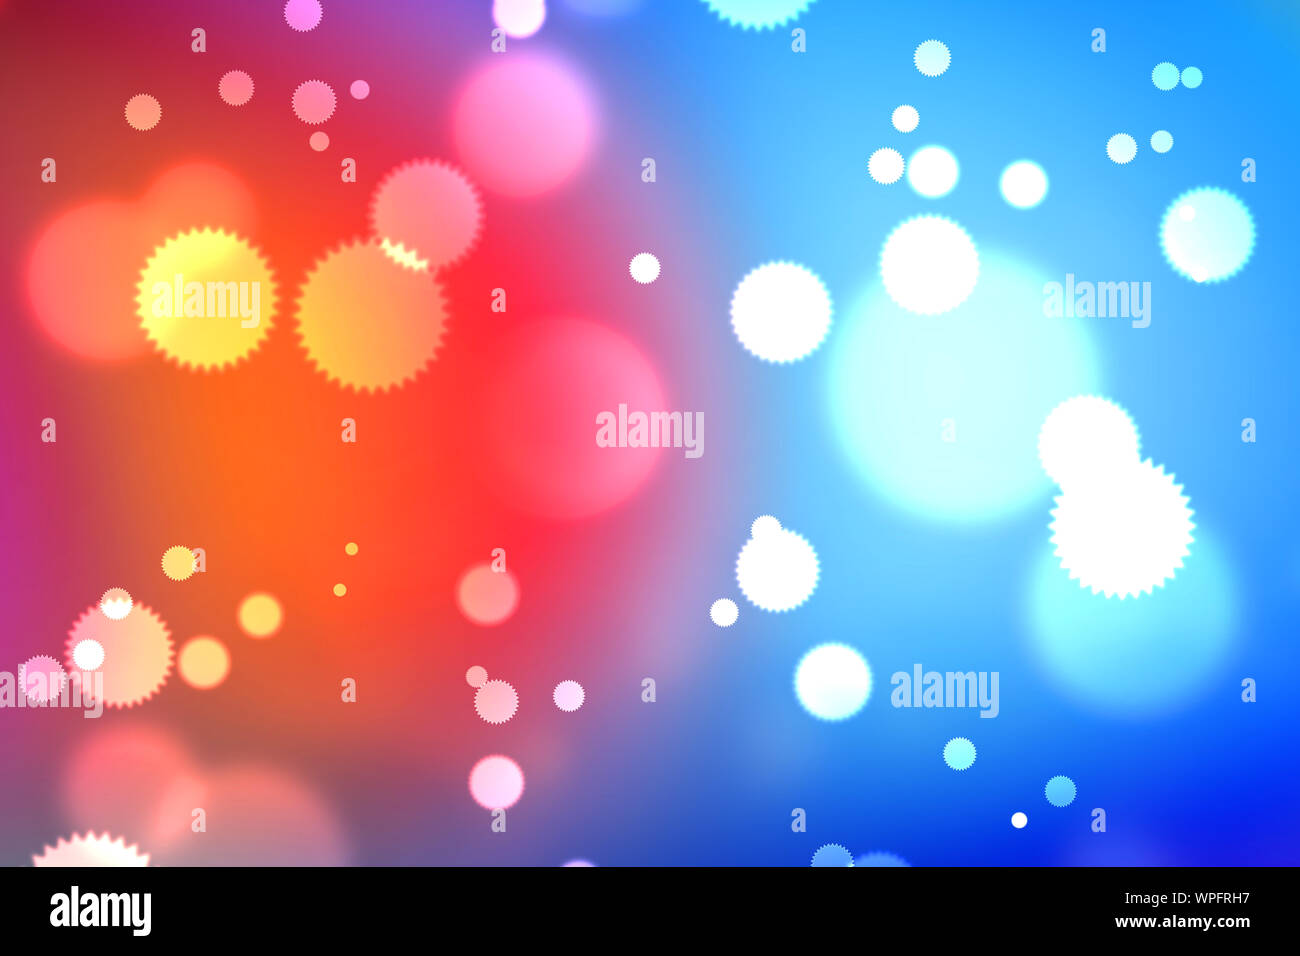 Light Abstract Bokeh Background By Blur Or Defocused At